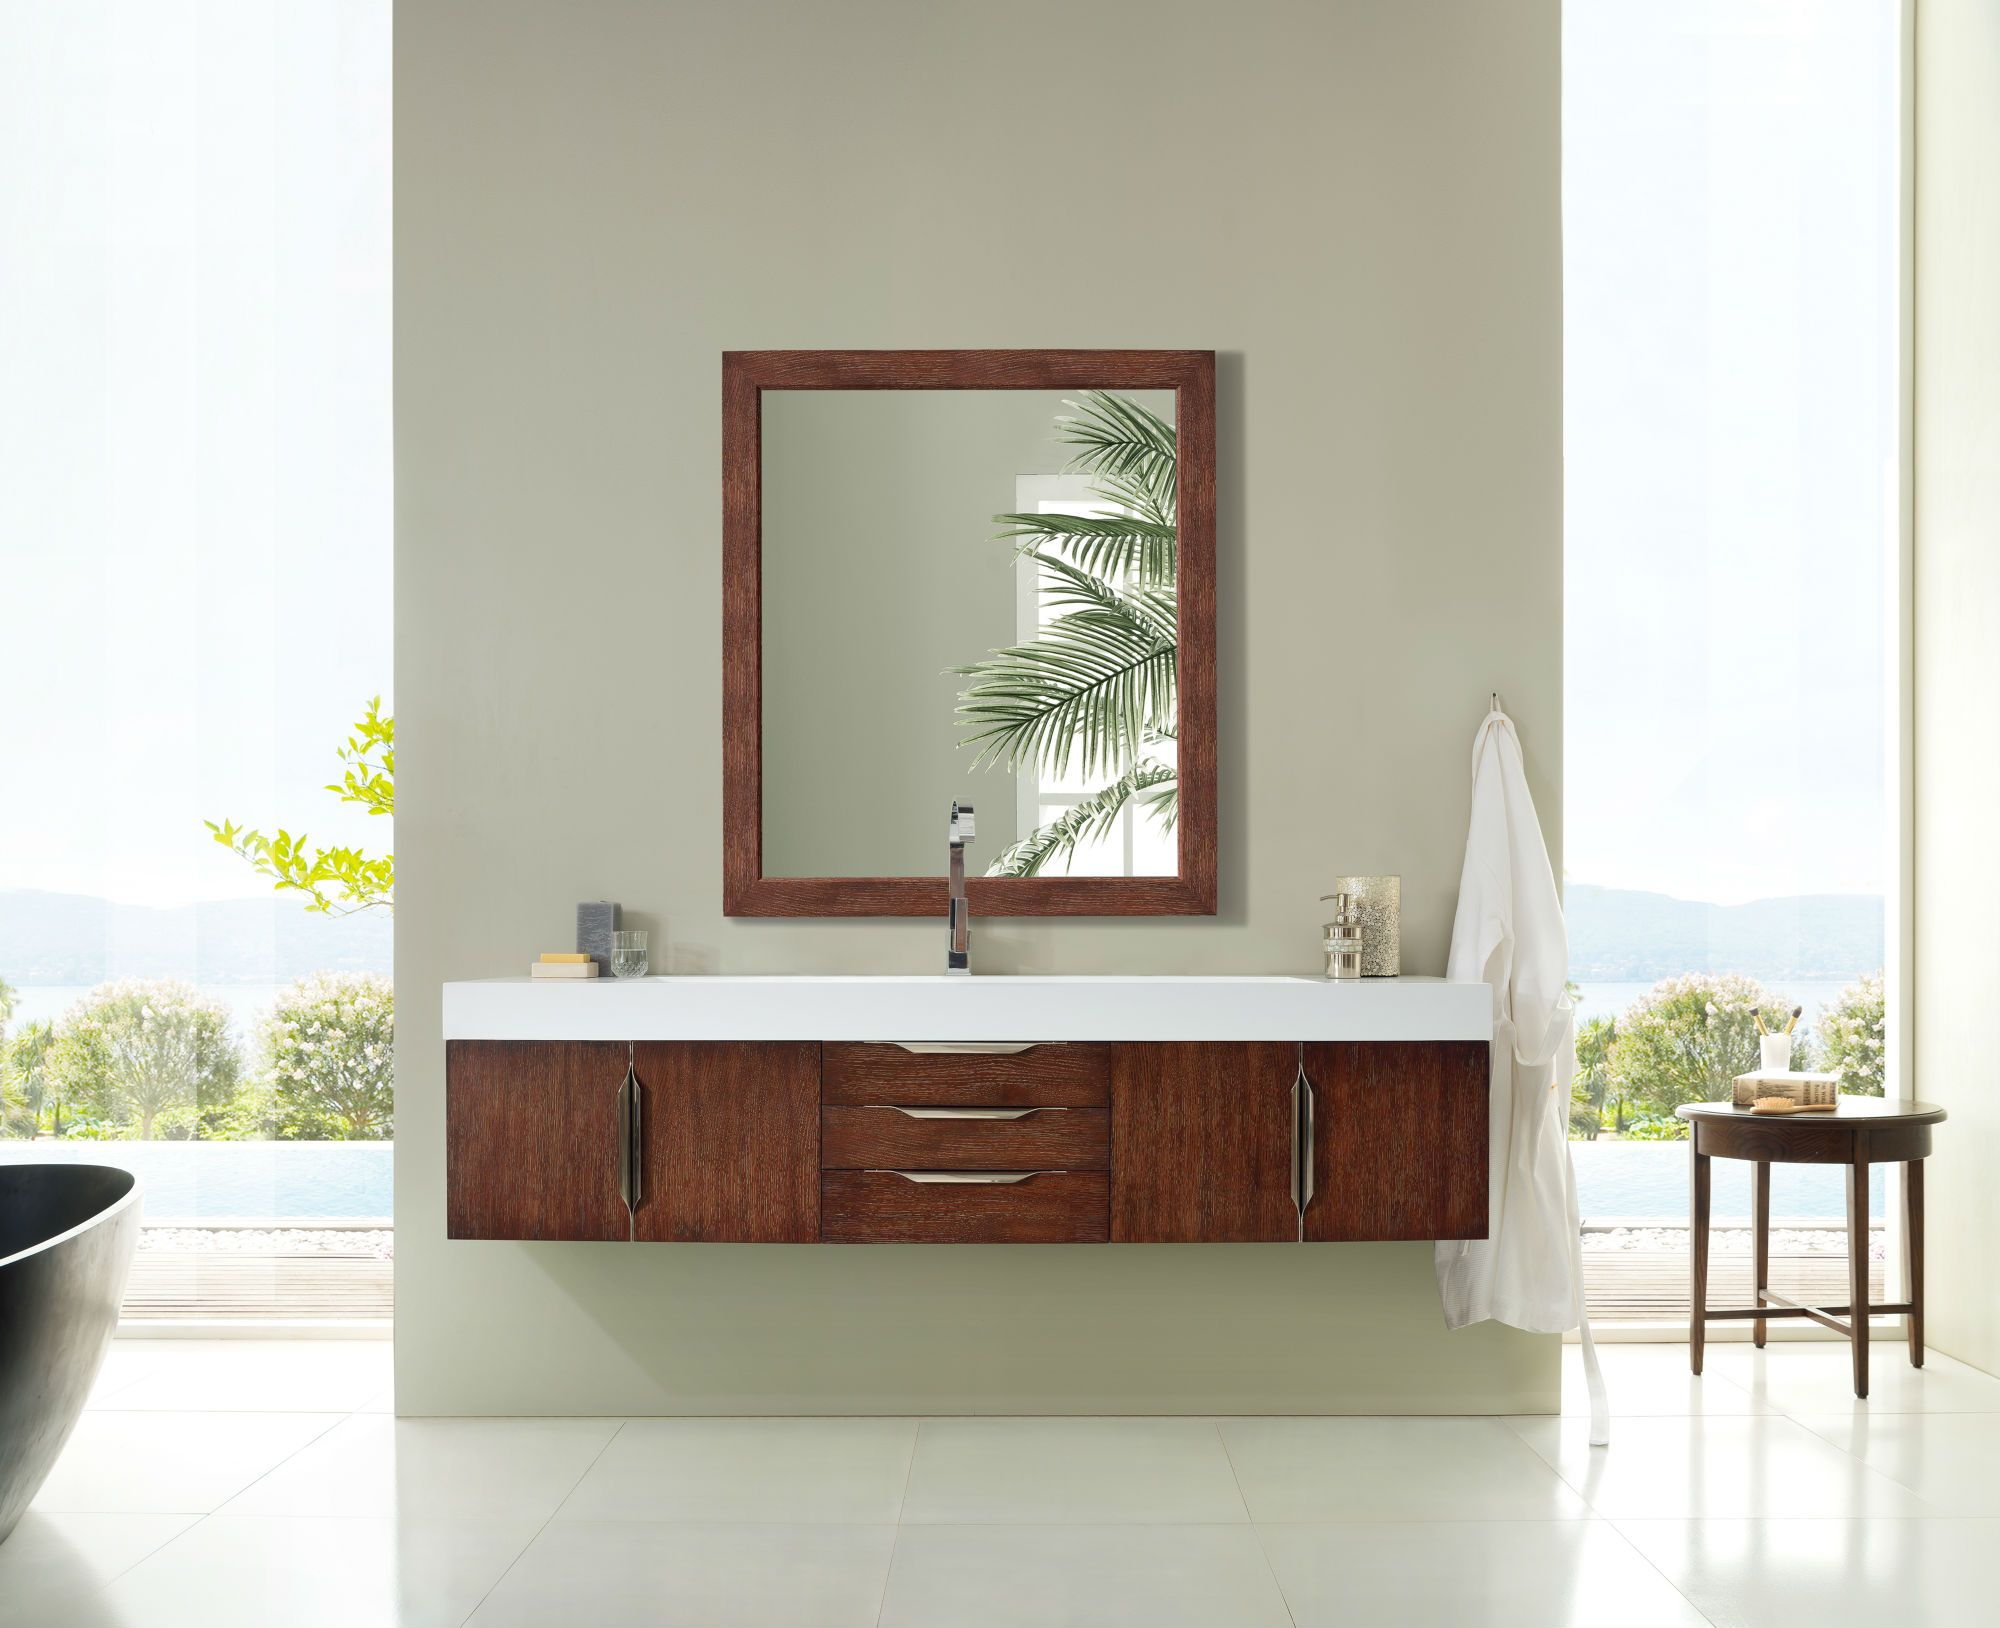 "Mercer Island 72"" Single Bathroom Vanity, Coffee Oak Single Bathroom Vanity James Martin Vanities"